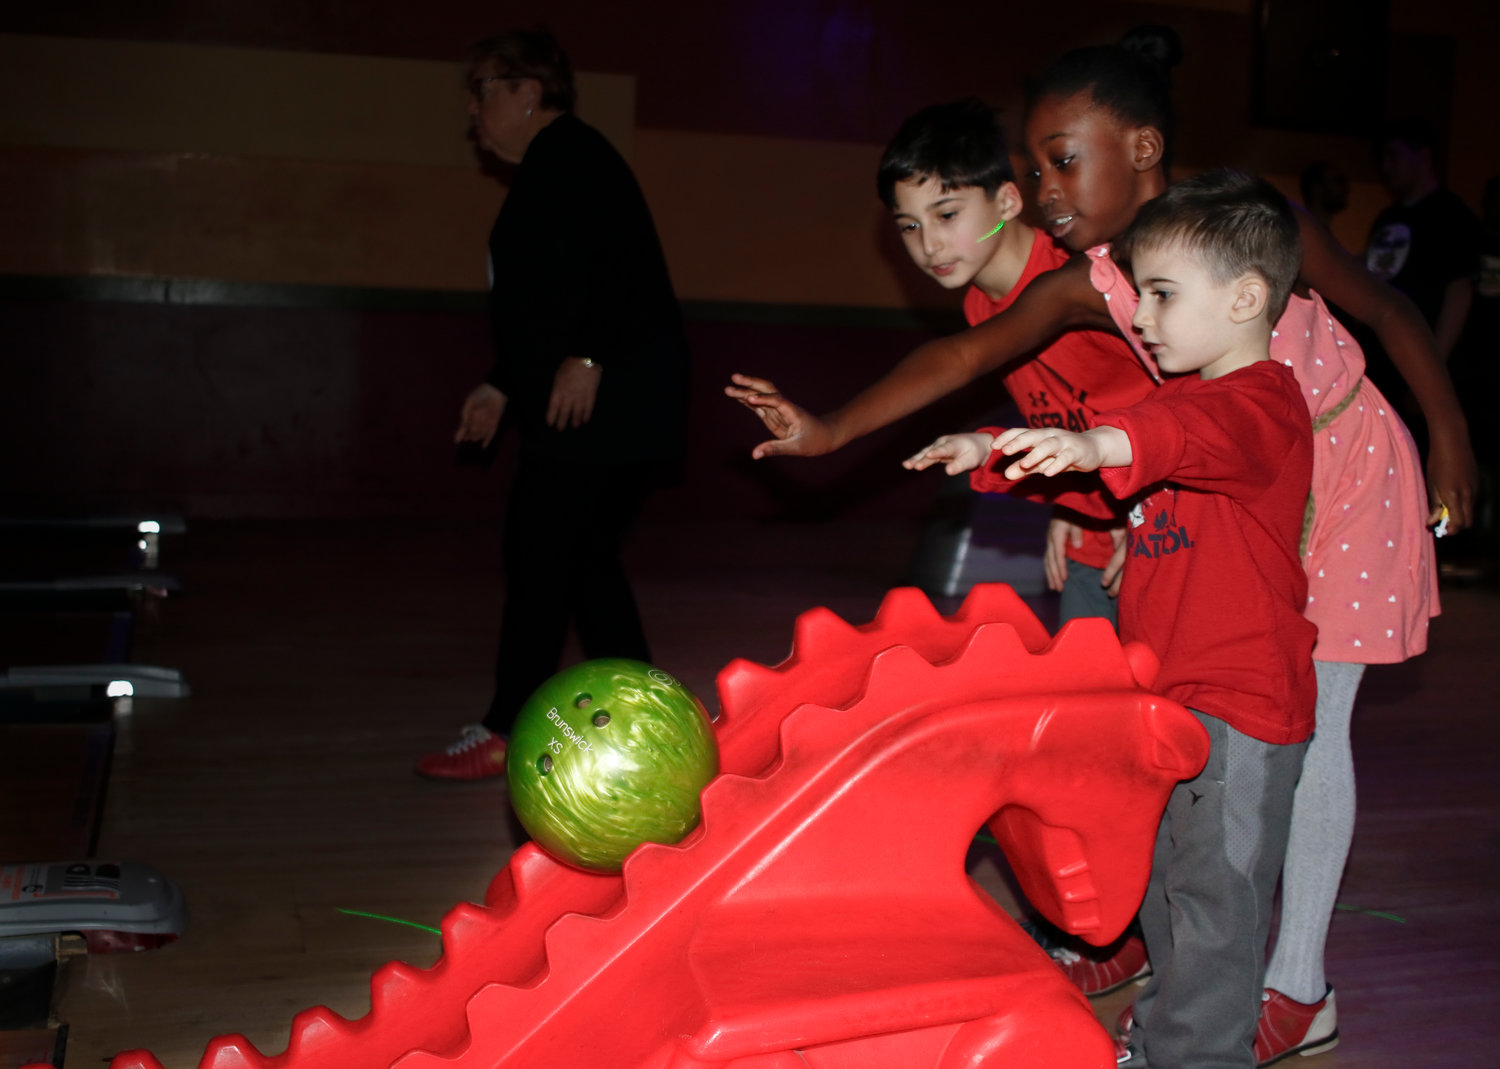 Adrian Baharvar, 8, right, rolled a spare with help from his brother Elliot, 8 and Soriah Gift, 8.